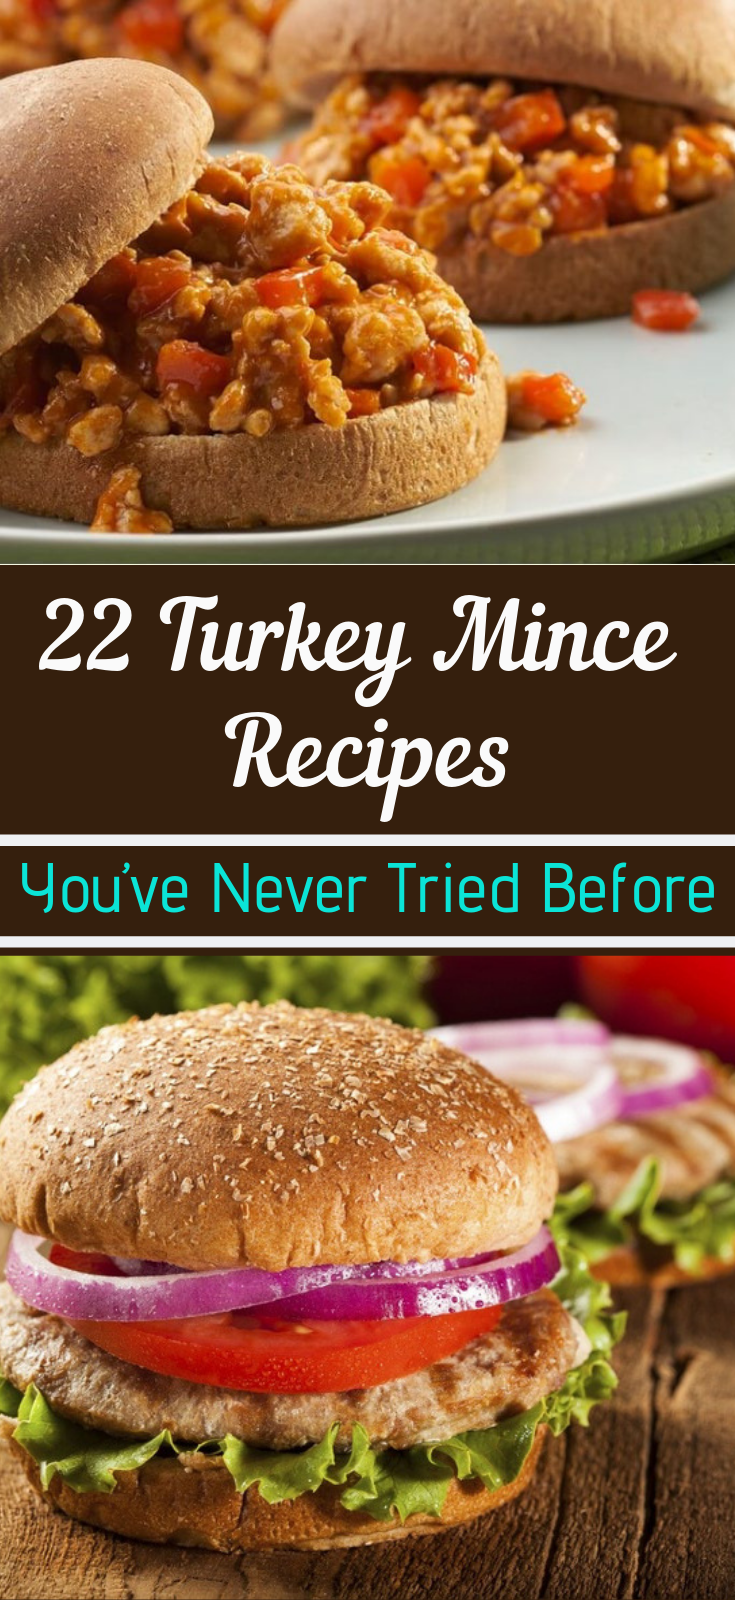 22 Turkey Mince Recipes You've Never Tried Before | Turkey ...